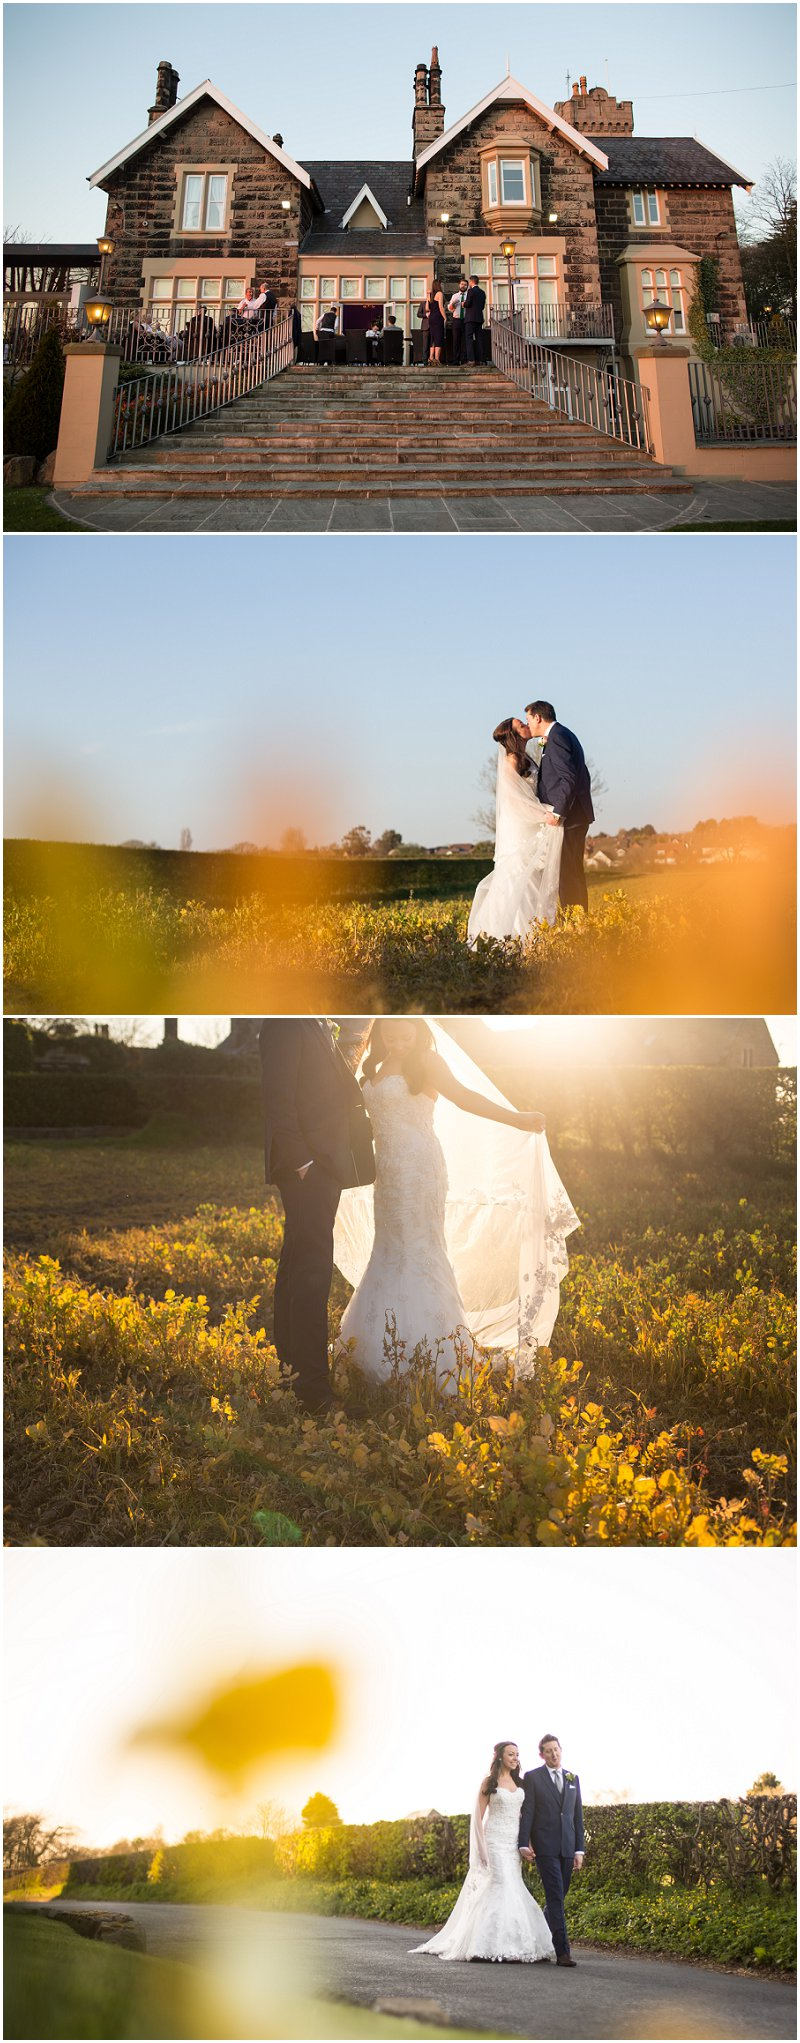 Golden hour shots of bride and groom at West Tower wedding venue